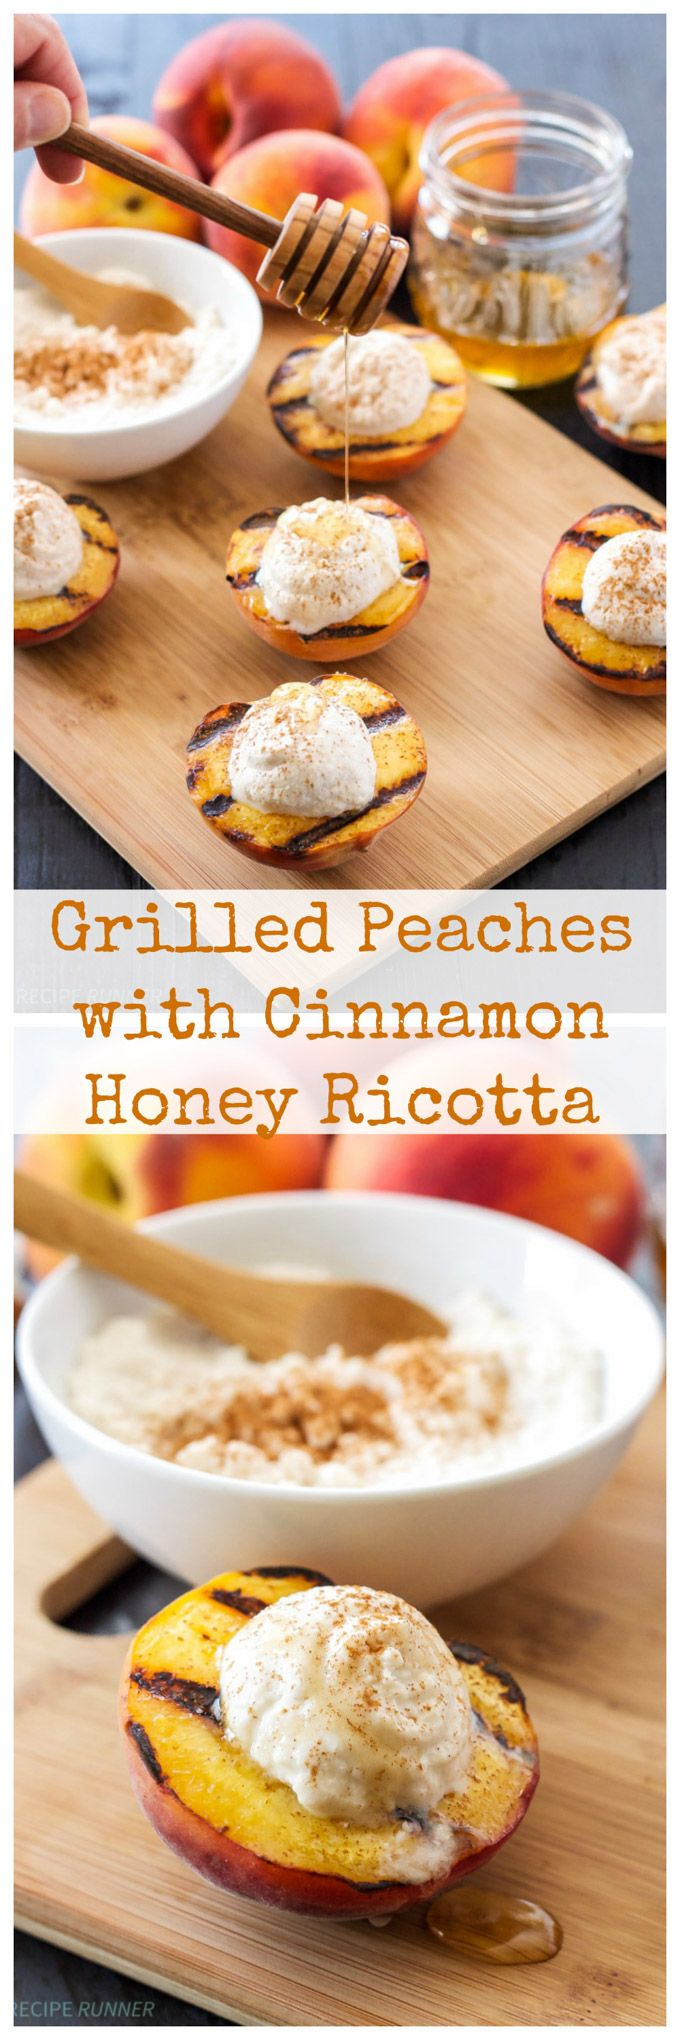 Grilled Peaches with Cinnamon Honey Ricotta | This light and not too sweet summer dessert takes only minutes to make and tastes so good!